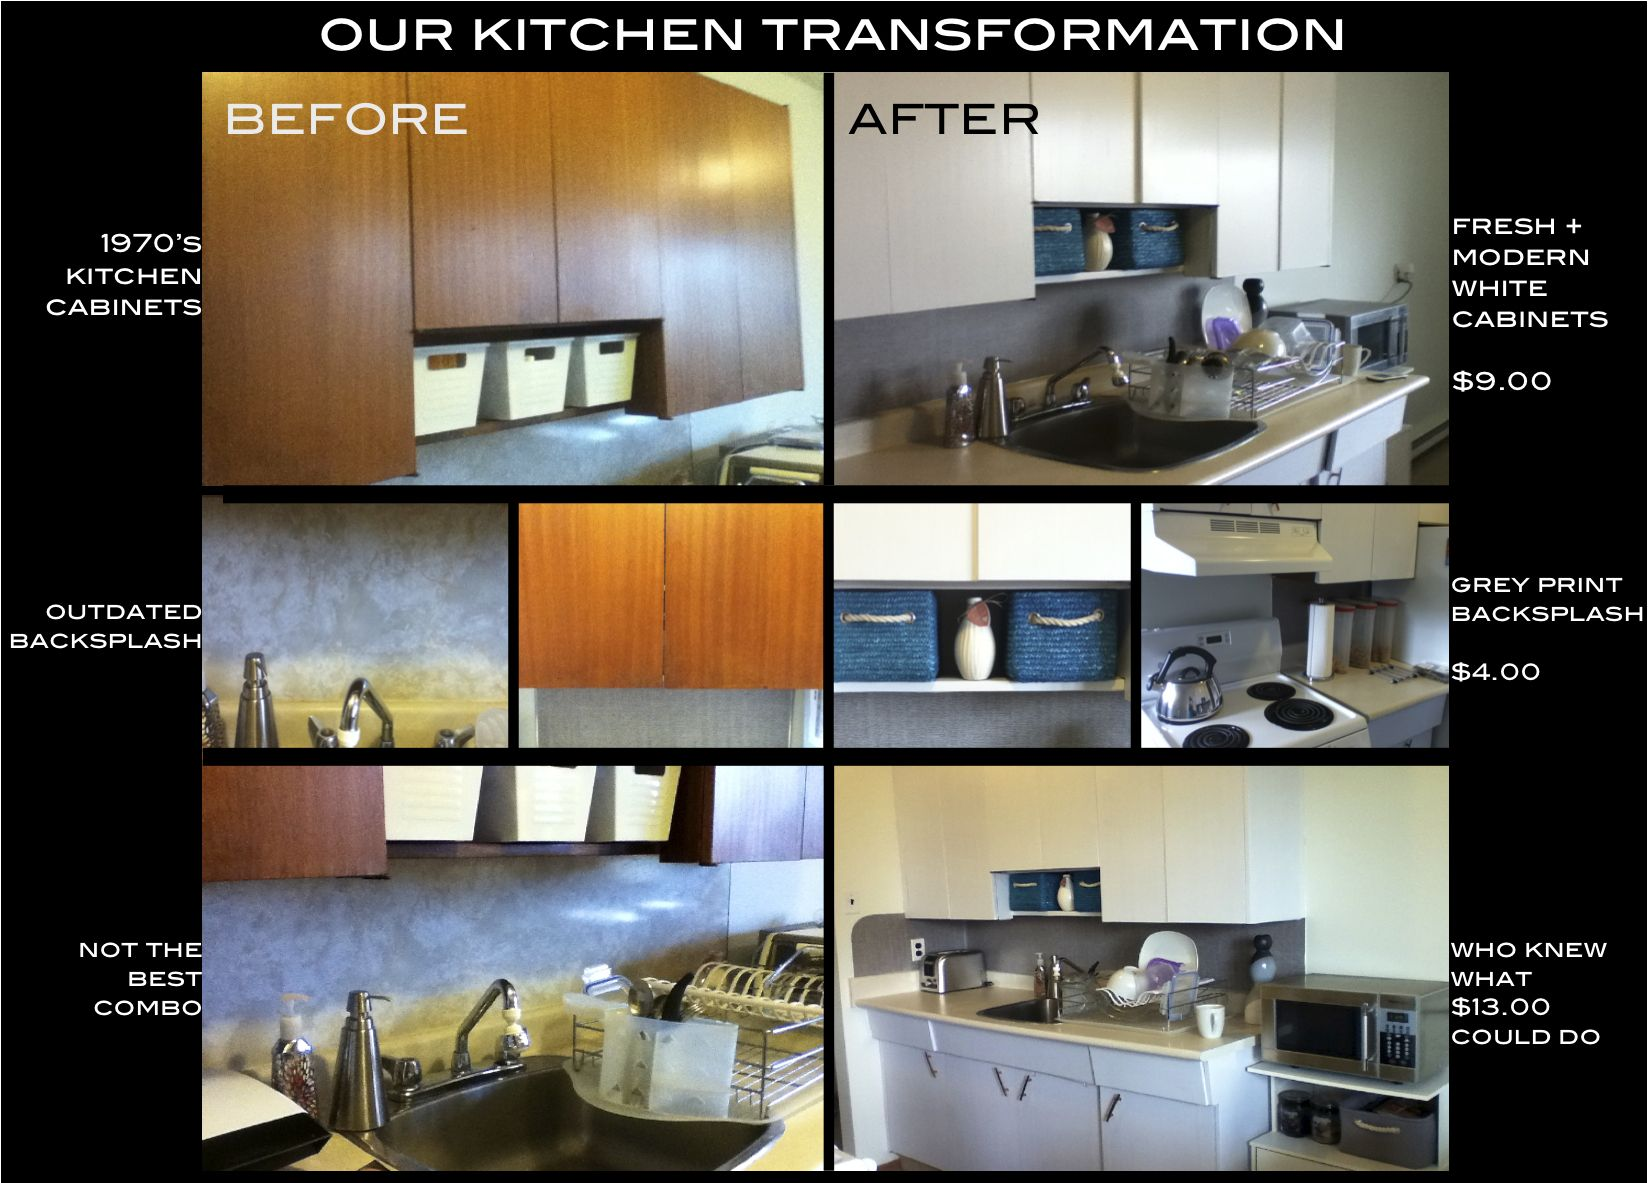 Contact Paper Backsplash Ideas Part - 43: Renou0027d Our Kitchen In Contact Paper For 13 Bucks! White Contact Paper For